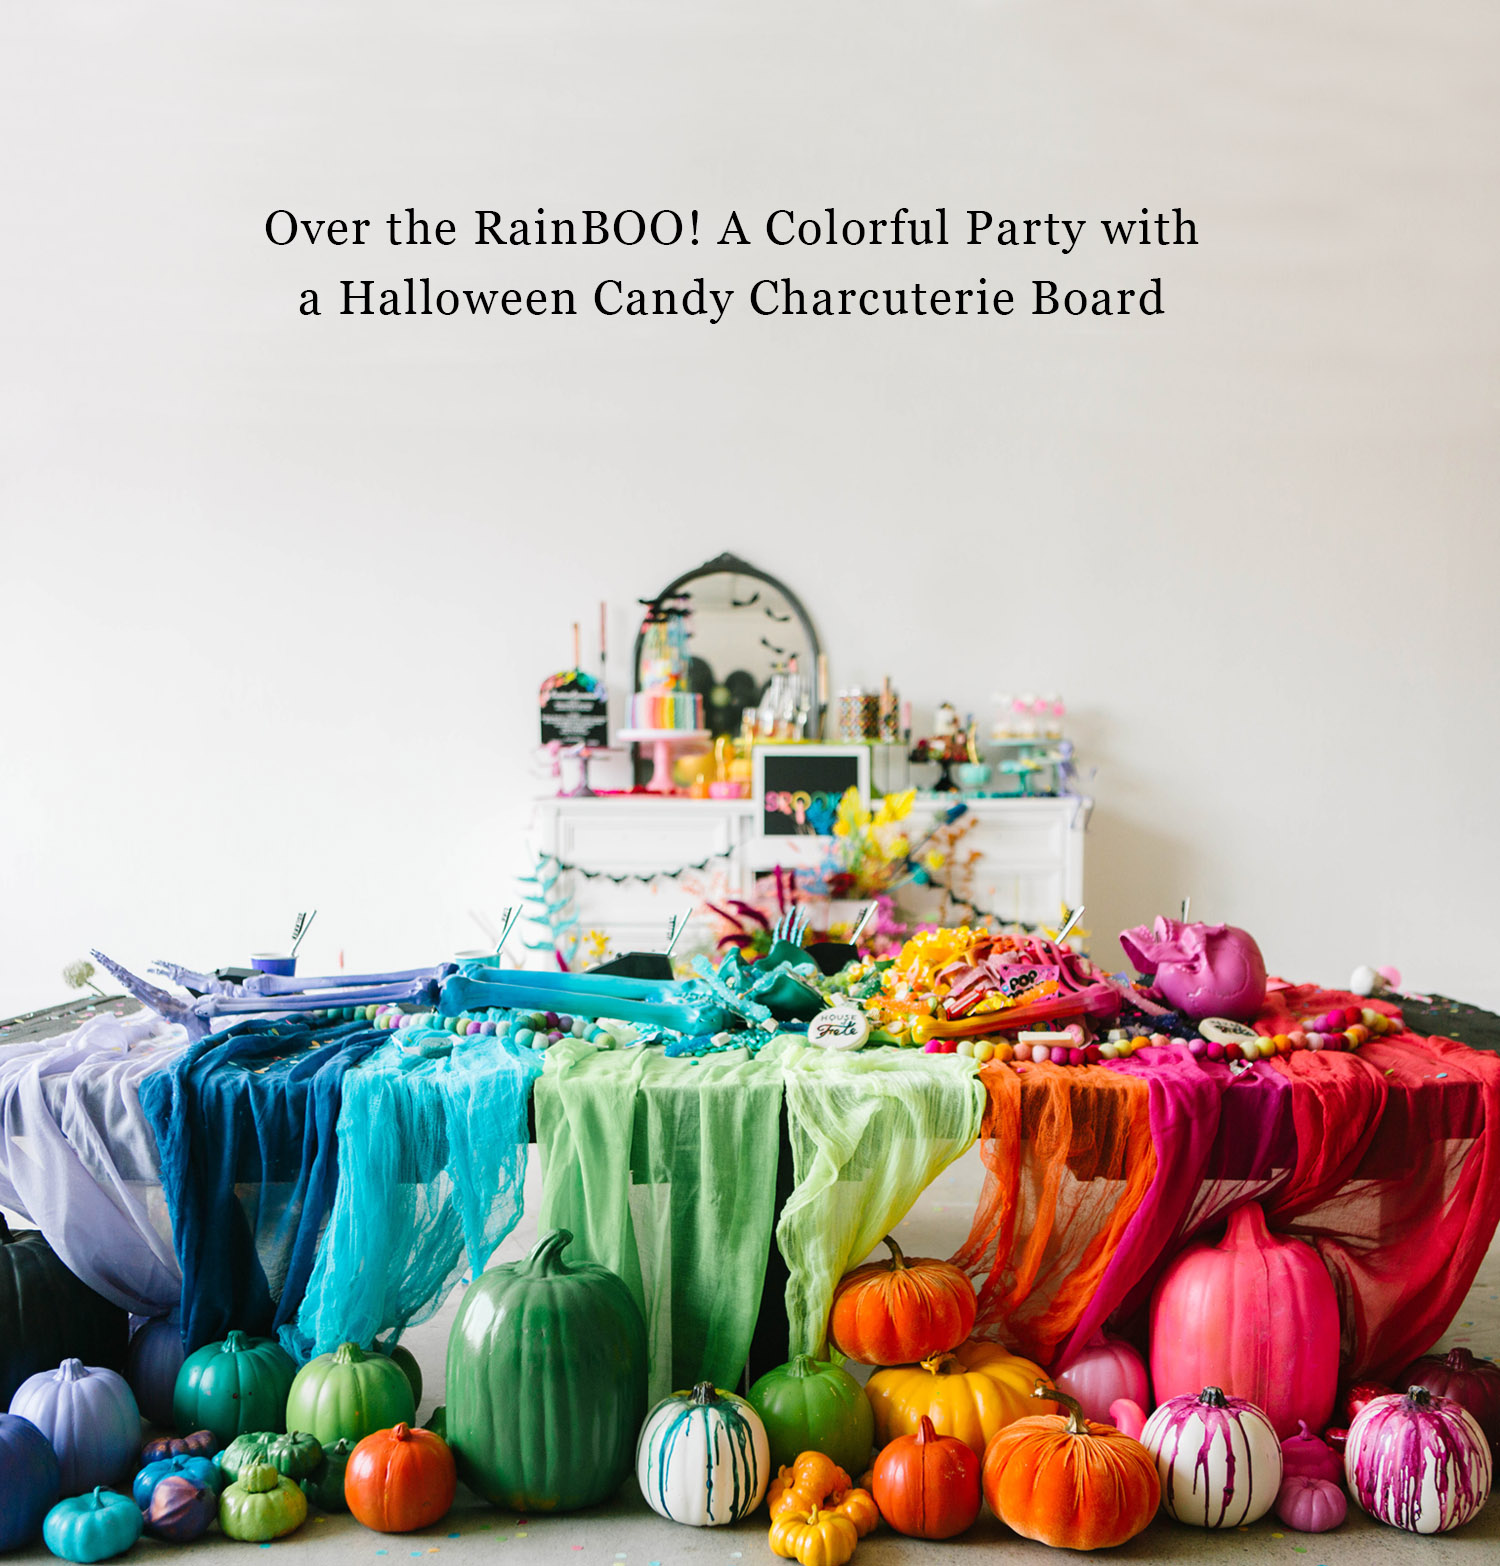 Colorful Halloween Party with Candy Board